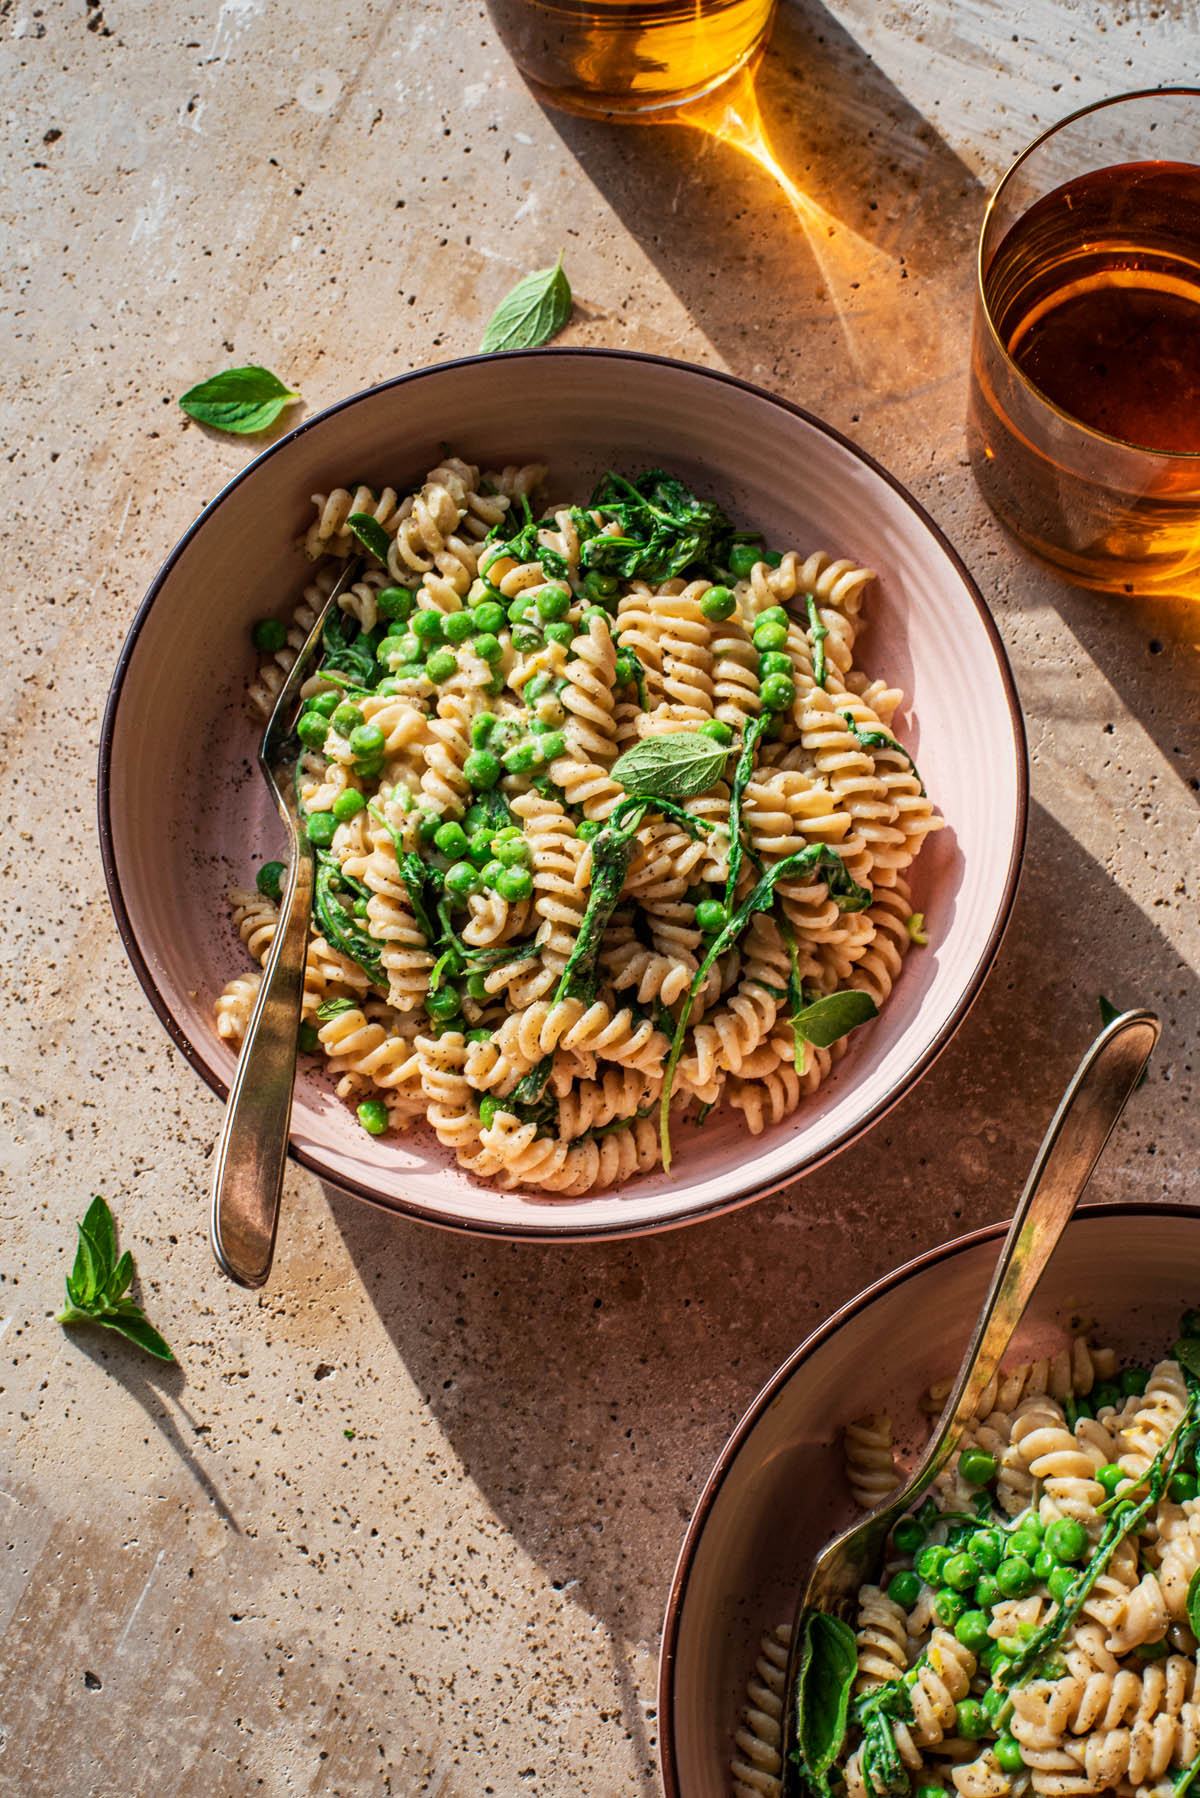 Two bowls of pasta with peas and greens.